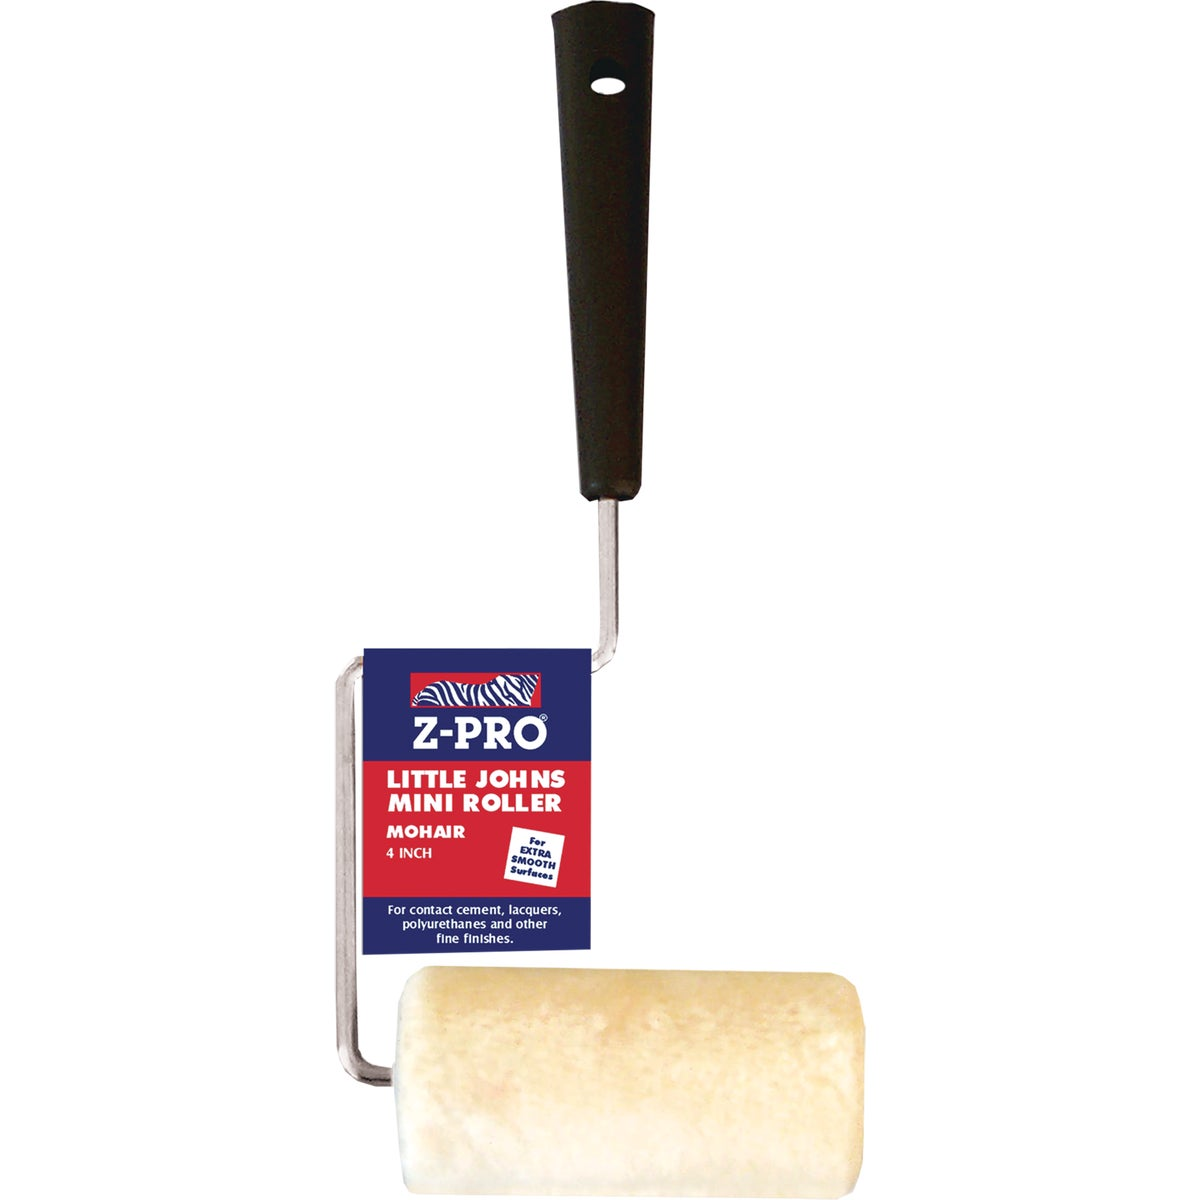 "4"" MOHAIR COVER & FRAME - 709 by Premier Paint Roller"